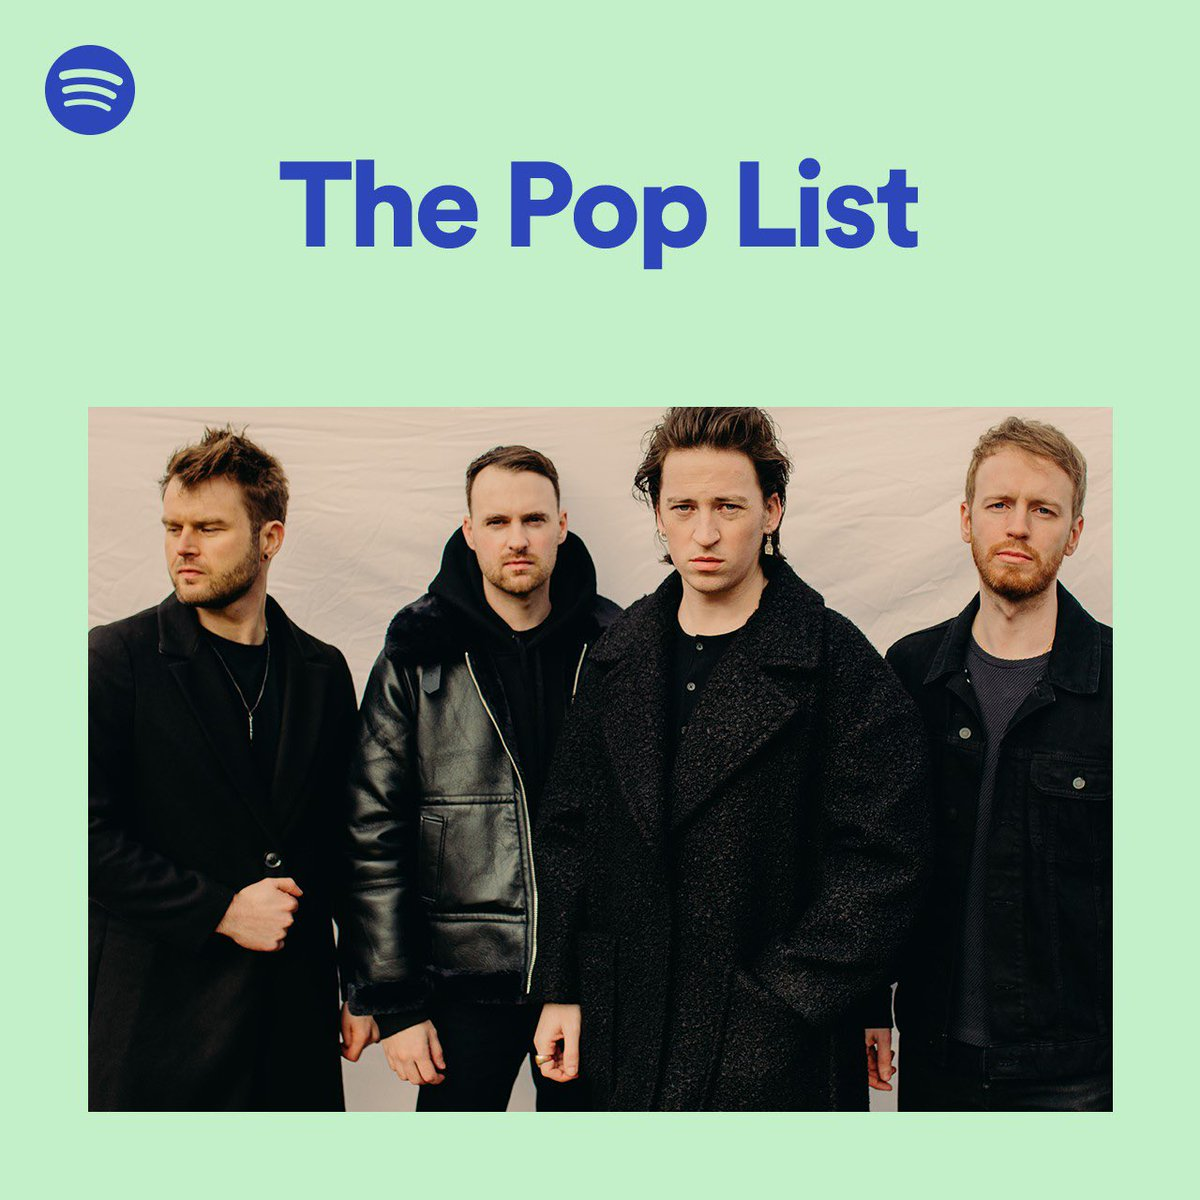 Thank you for the cover of The Pop List @SpotifyUK